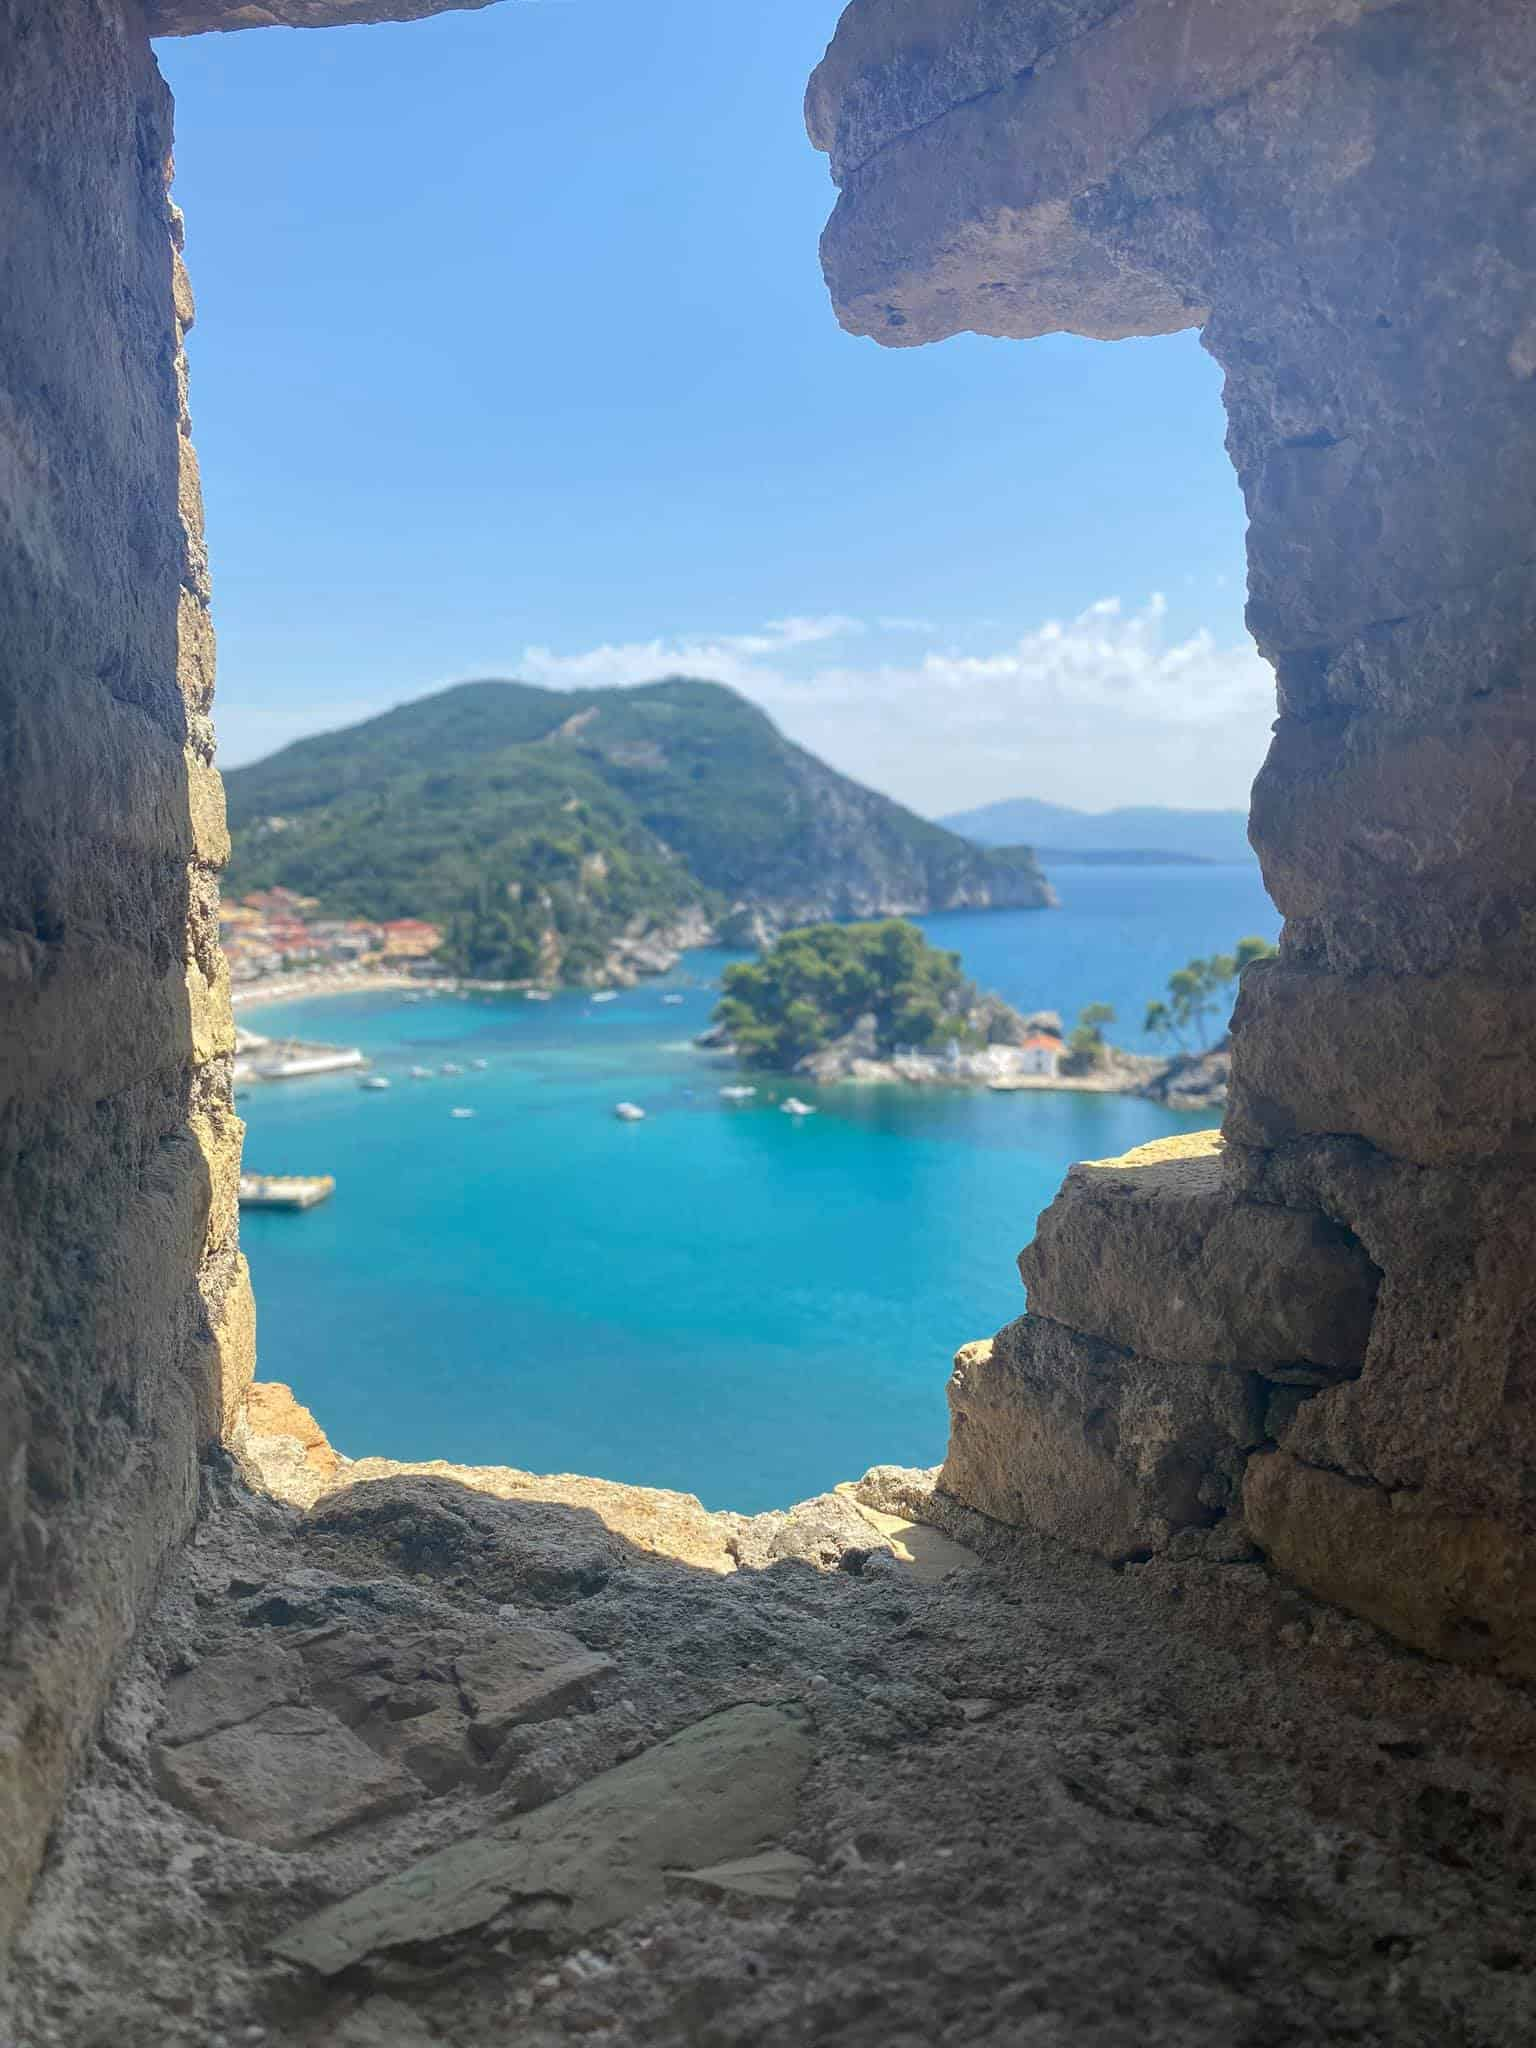 Views of Parga, Greece from the 15th Century Venetian Castle